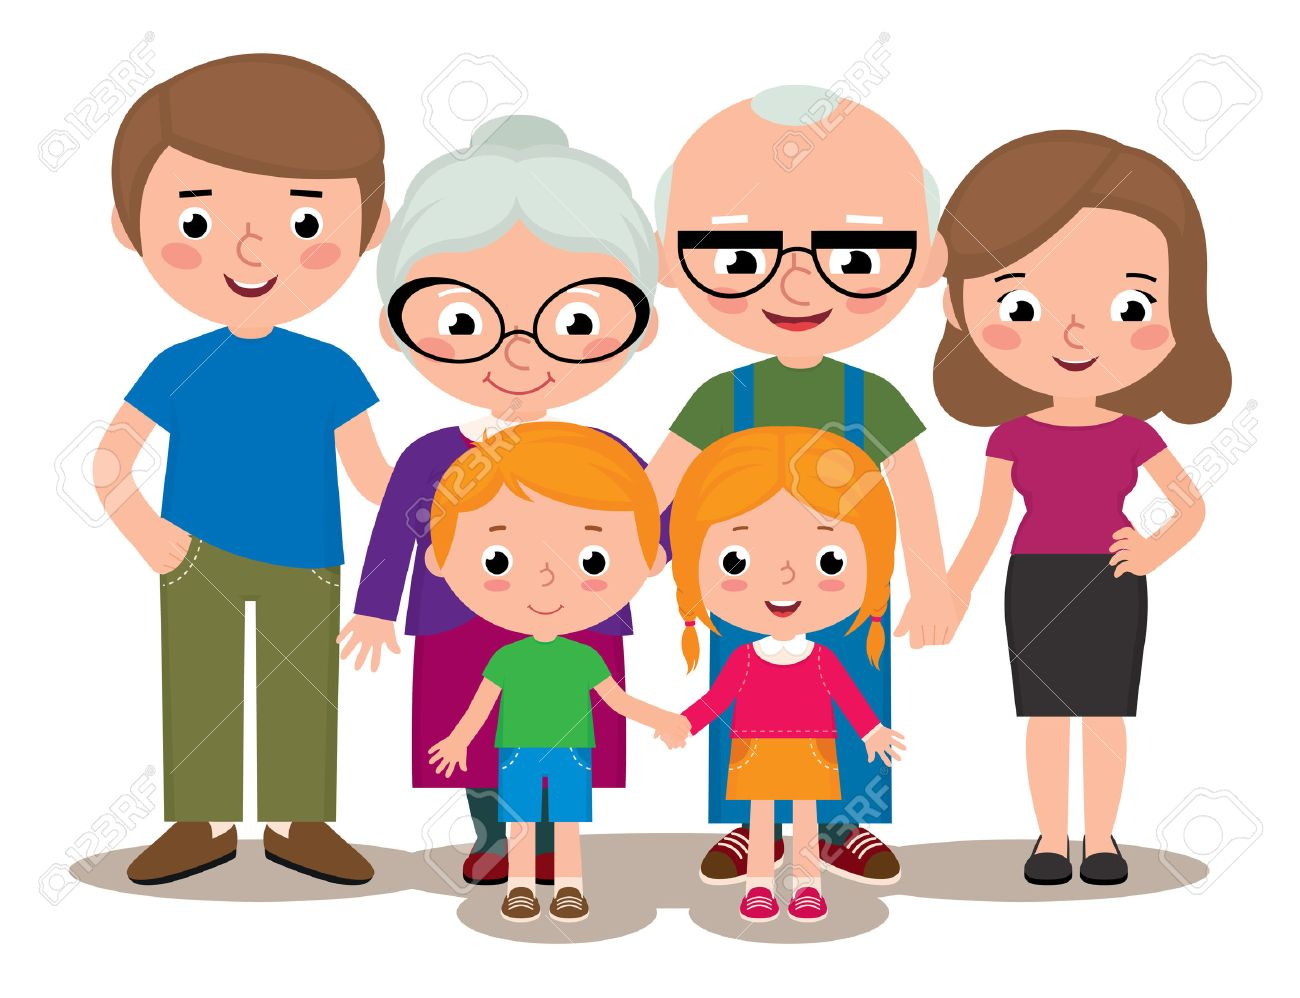 Stock Vector Cartoon Illustration Of A Family Group Portrait Royalty Free Cliparts Vectors And Stock Illustration Image 40657576